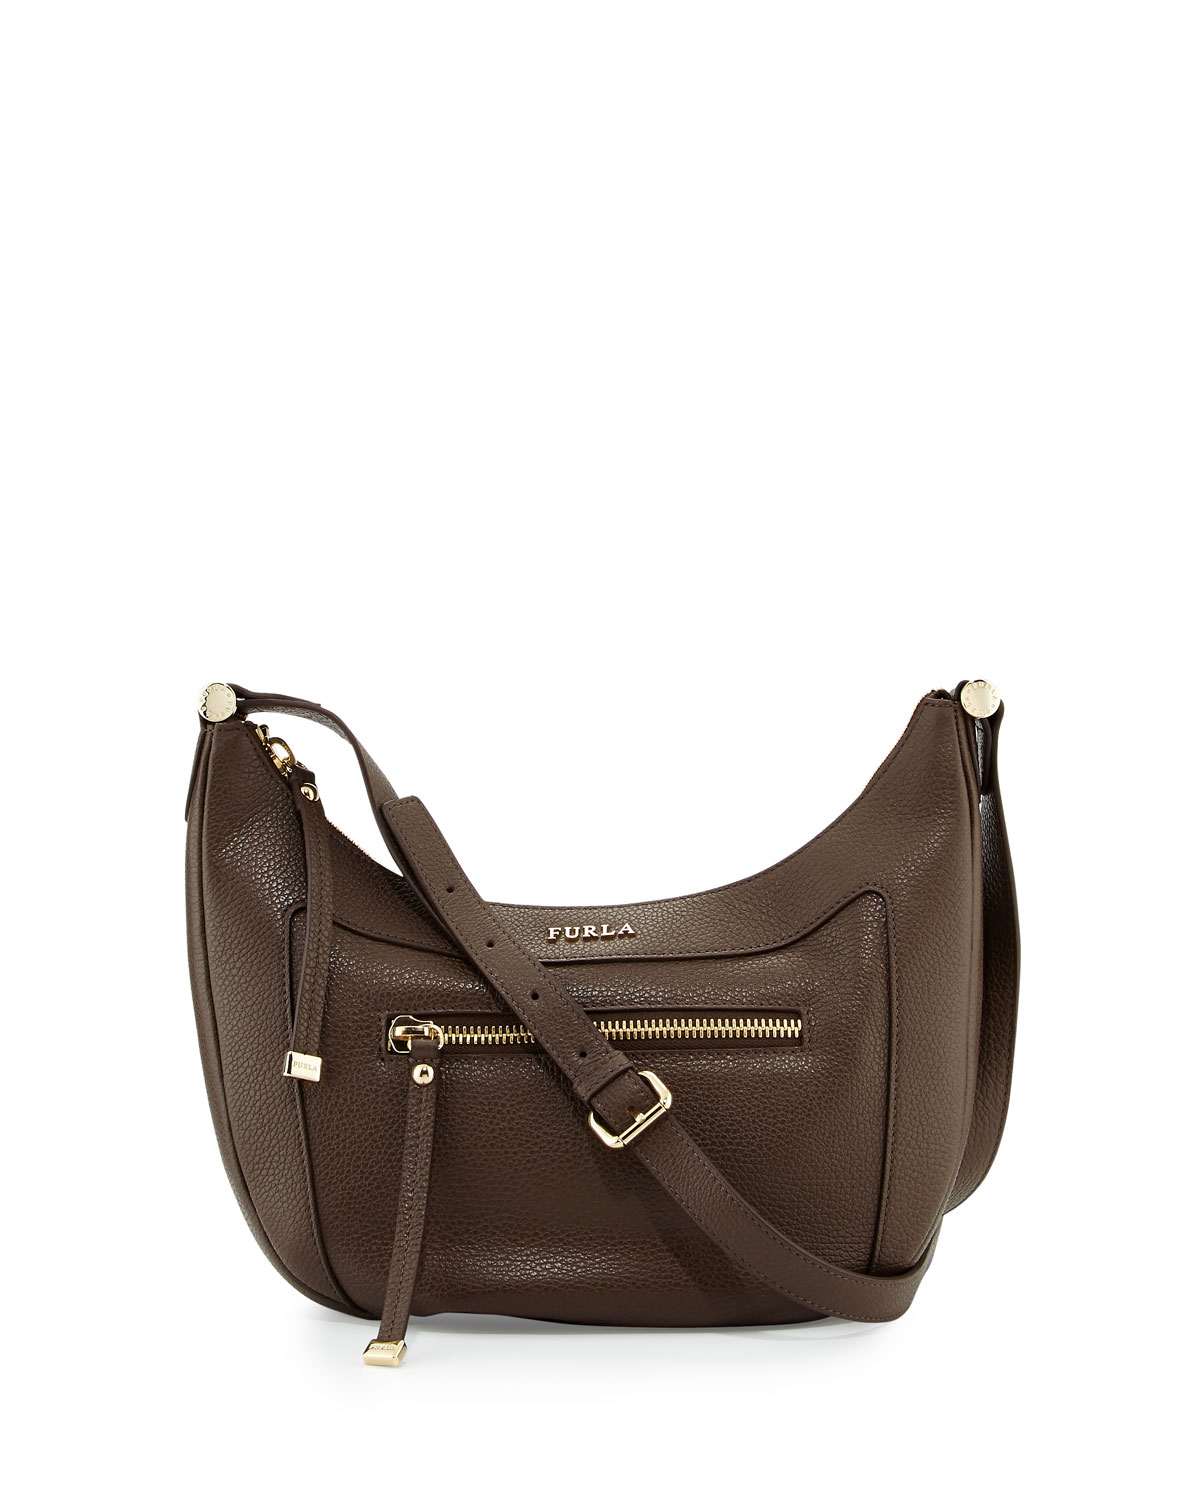 Furla Ginevra Small Leather Crossbody Bag in Brown | Lyst